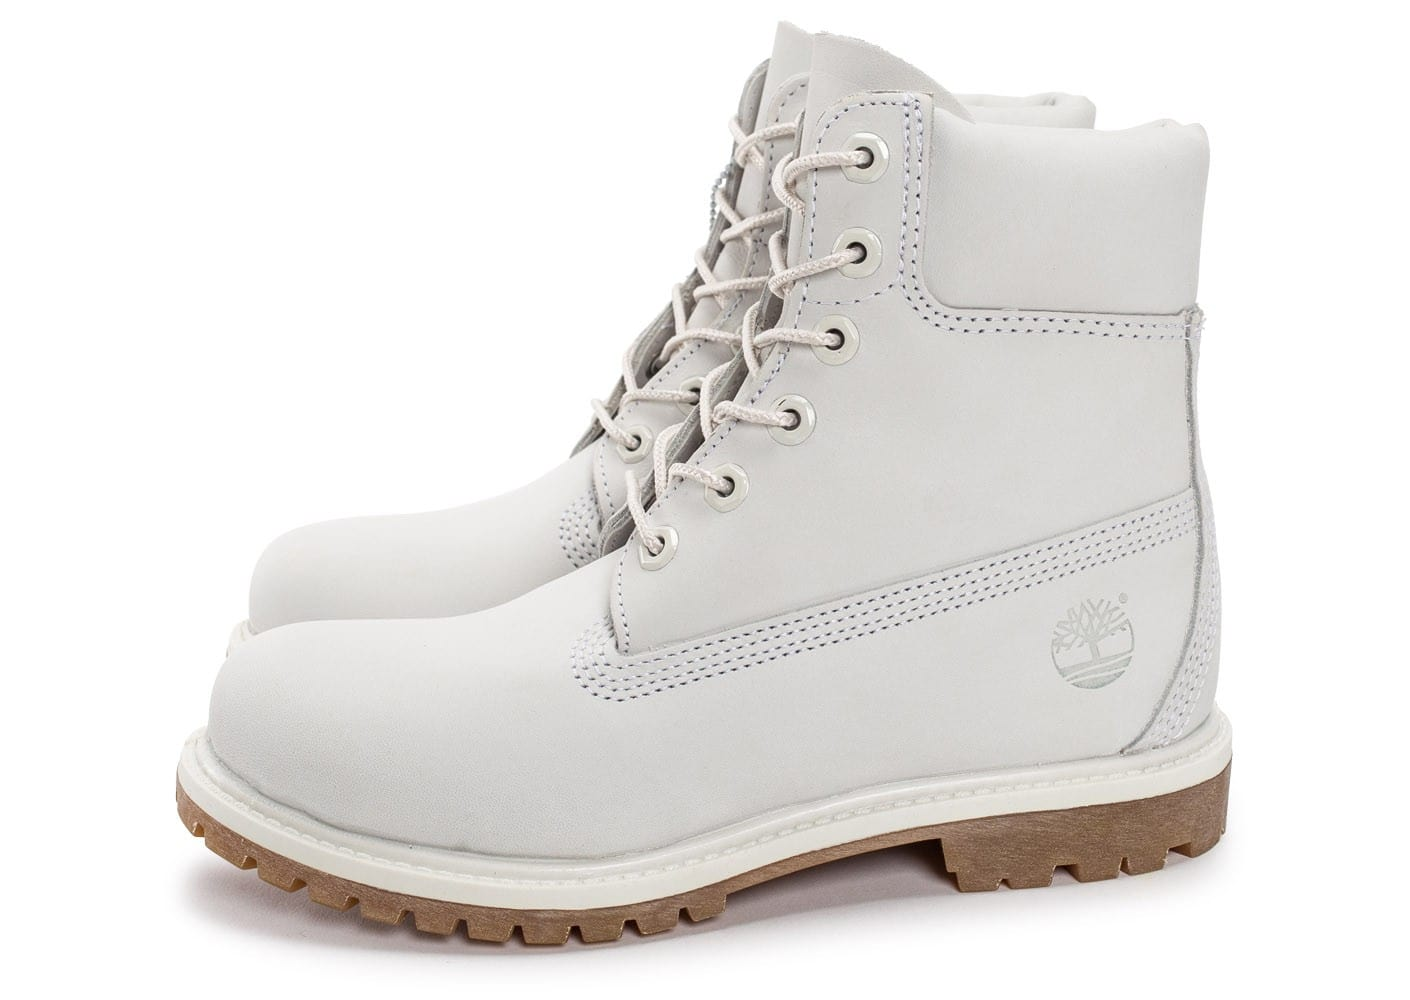 timberland 6 inch premium boots blanche chaussures femme chausport. Black Bedroom Furniture Sets. Home Design Ideas